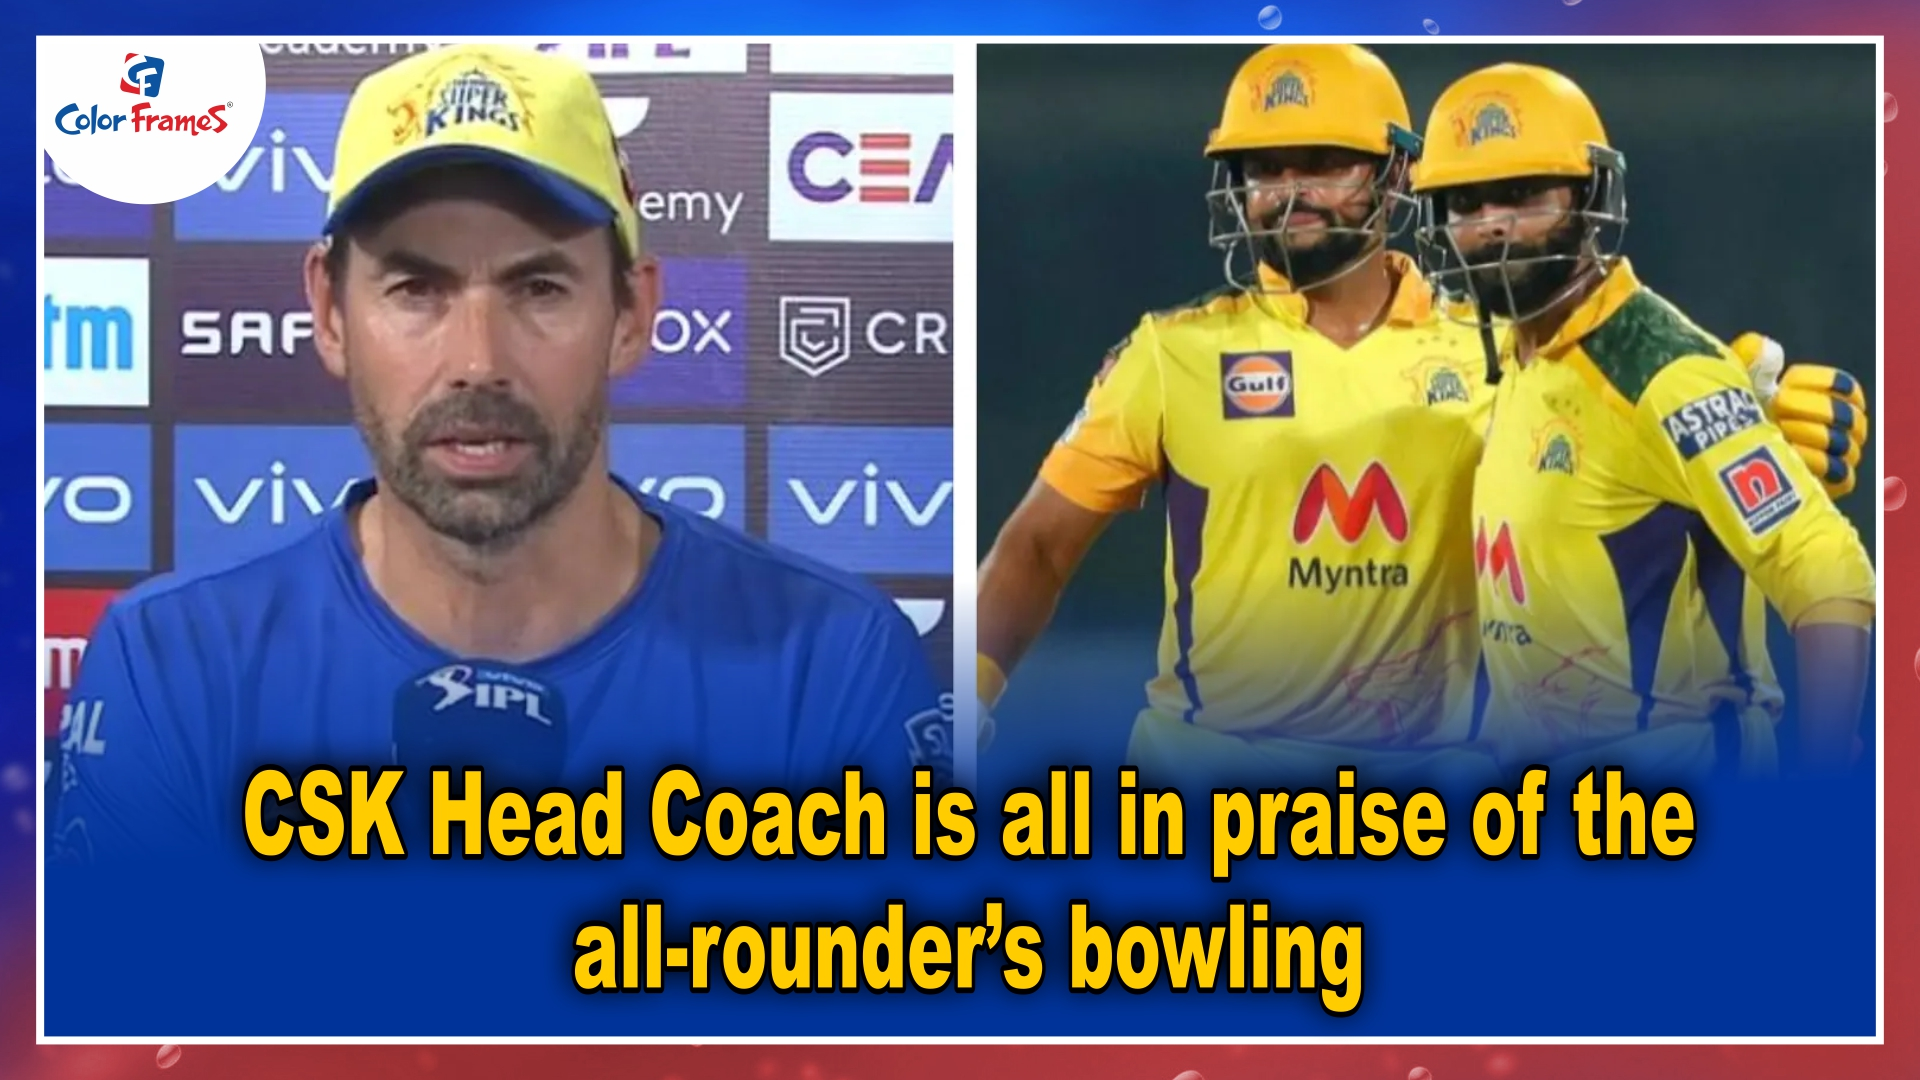 CSK Head Coach is all in praise of the all-rounder's bowling